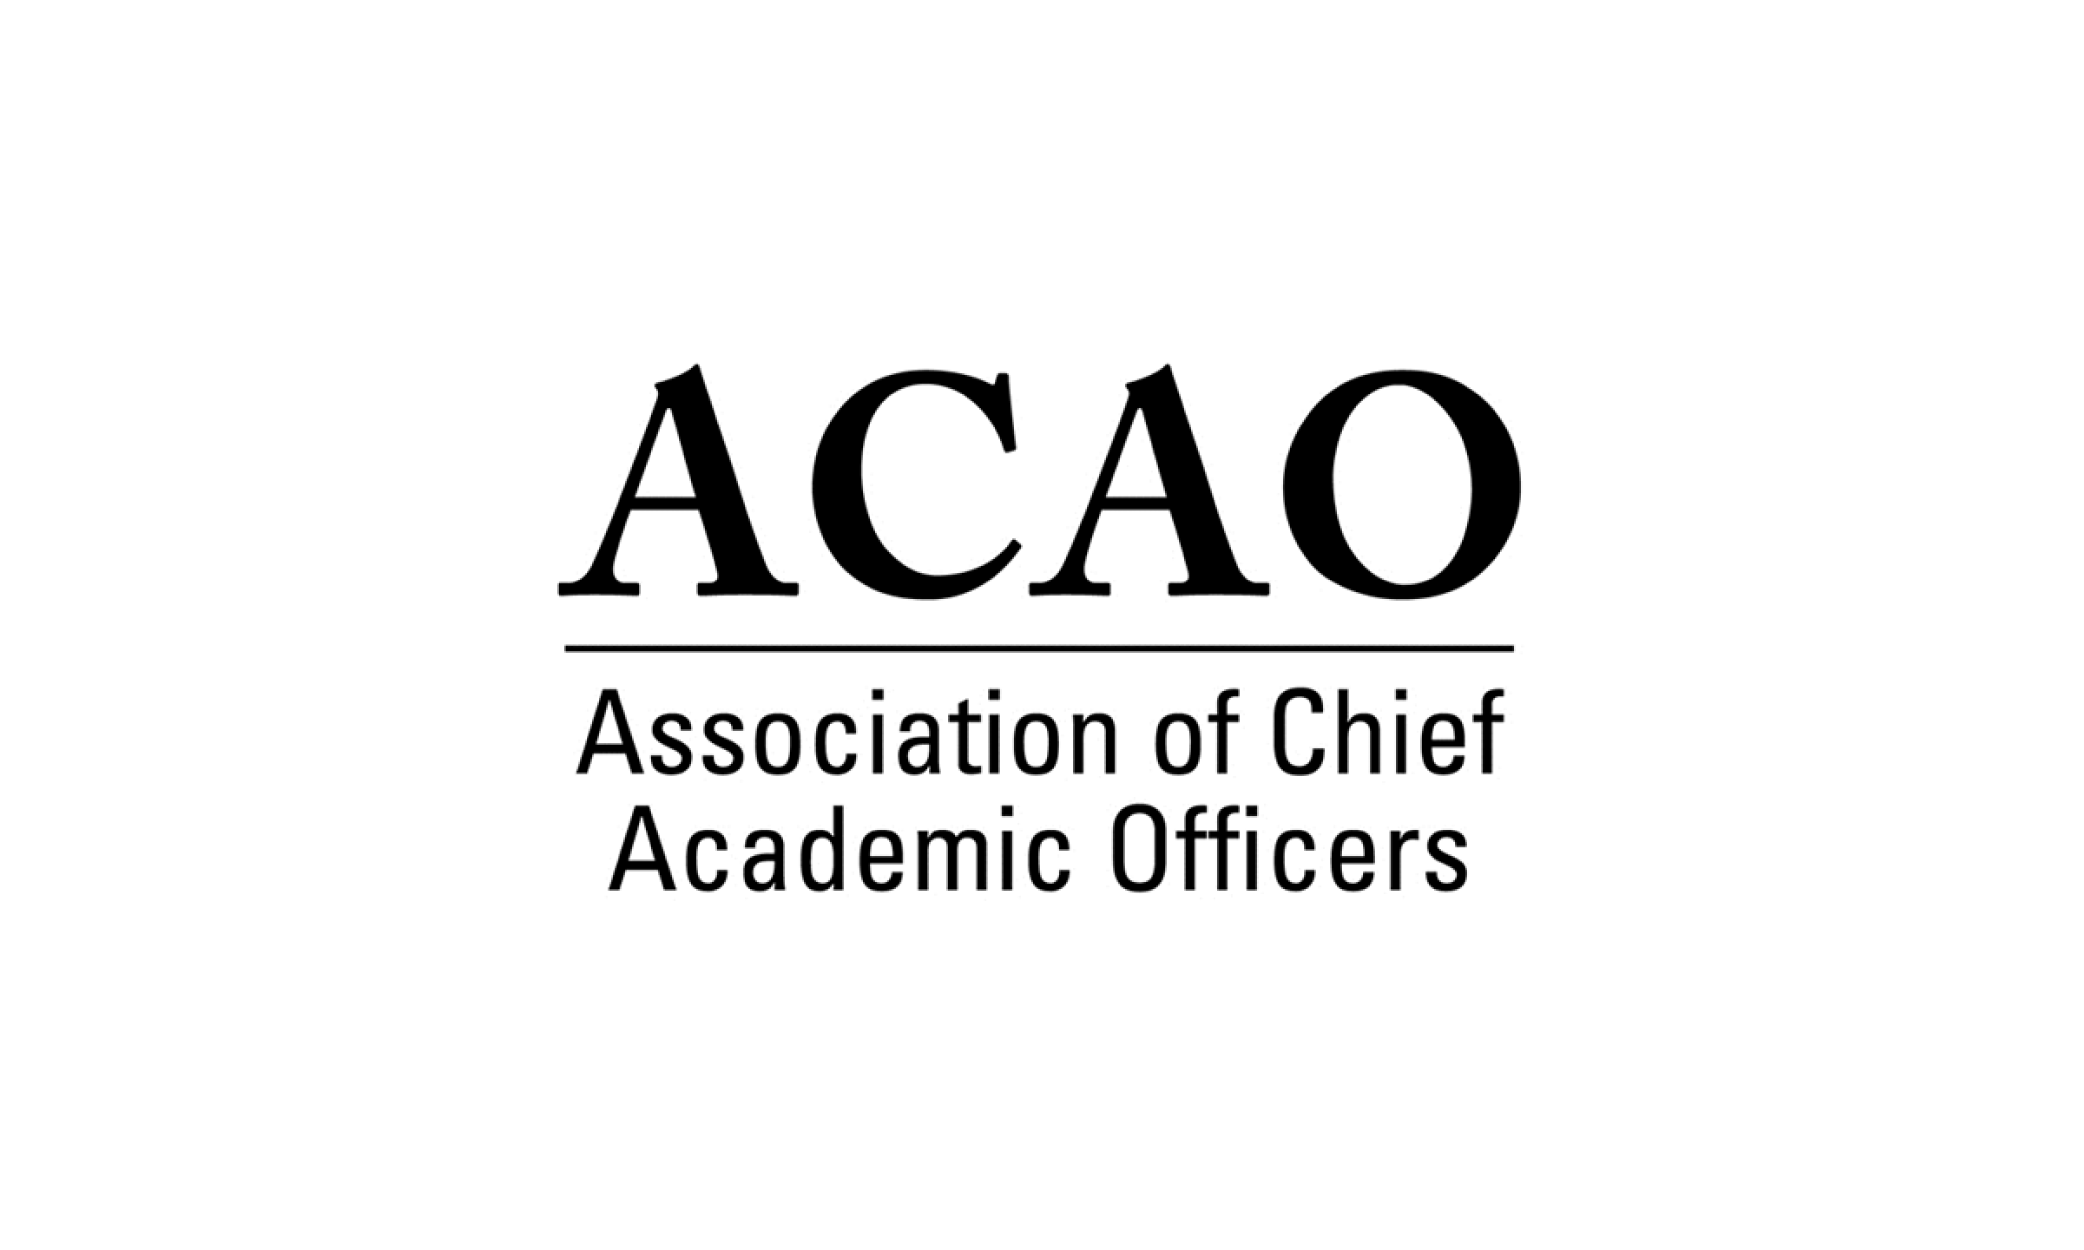 Association of Chief Academic Officers